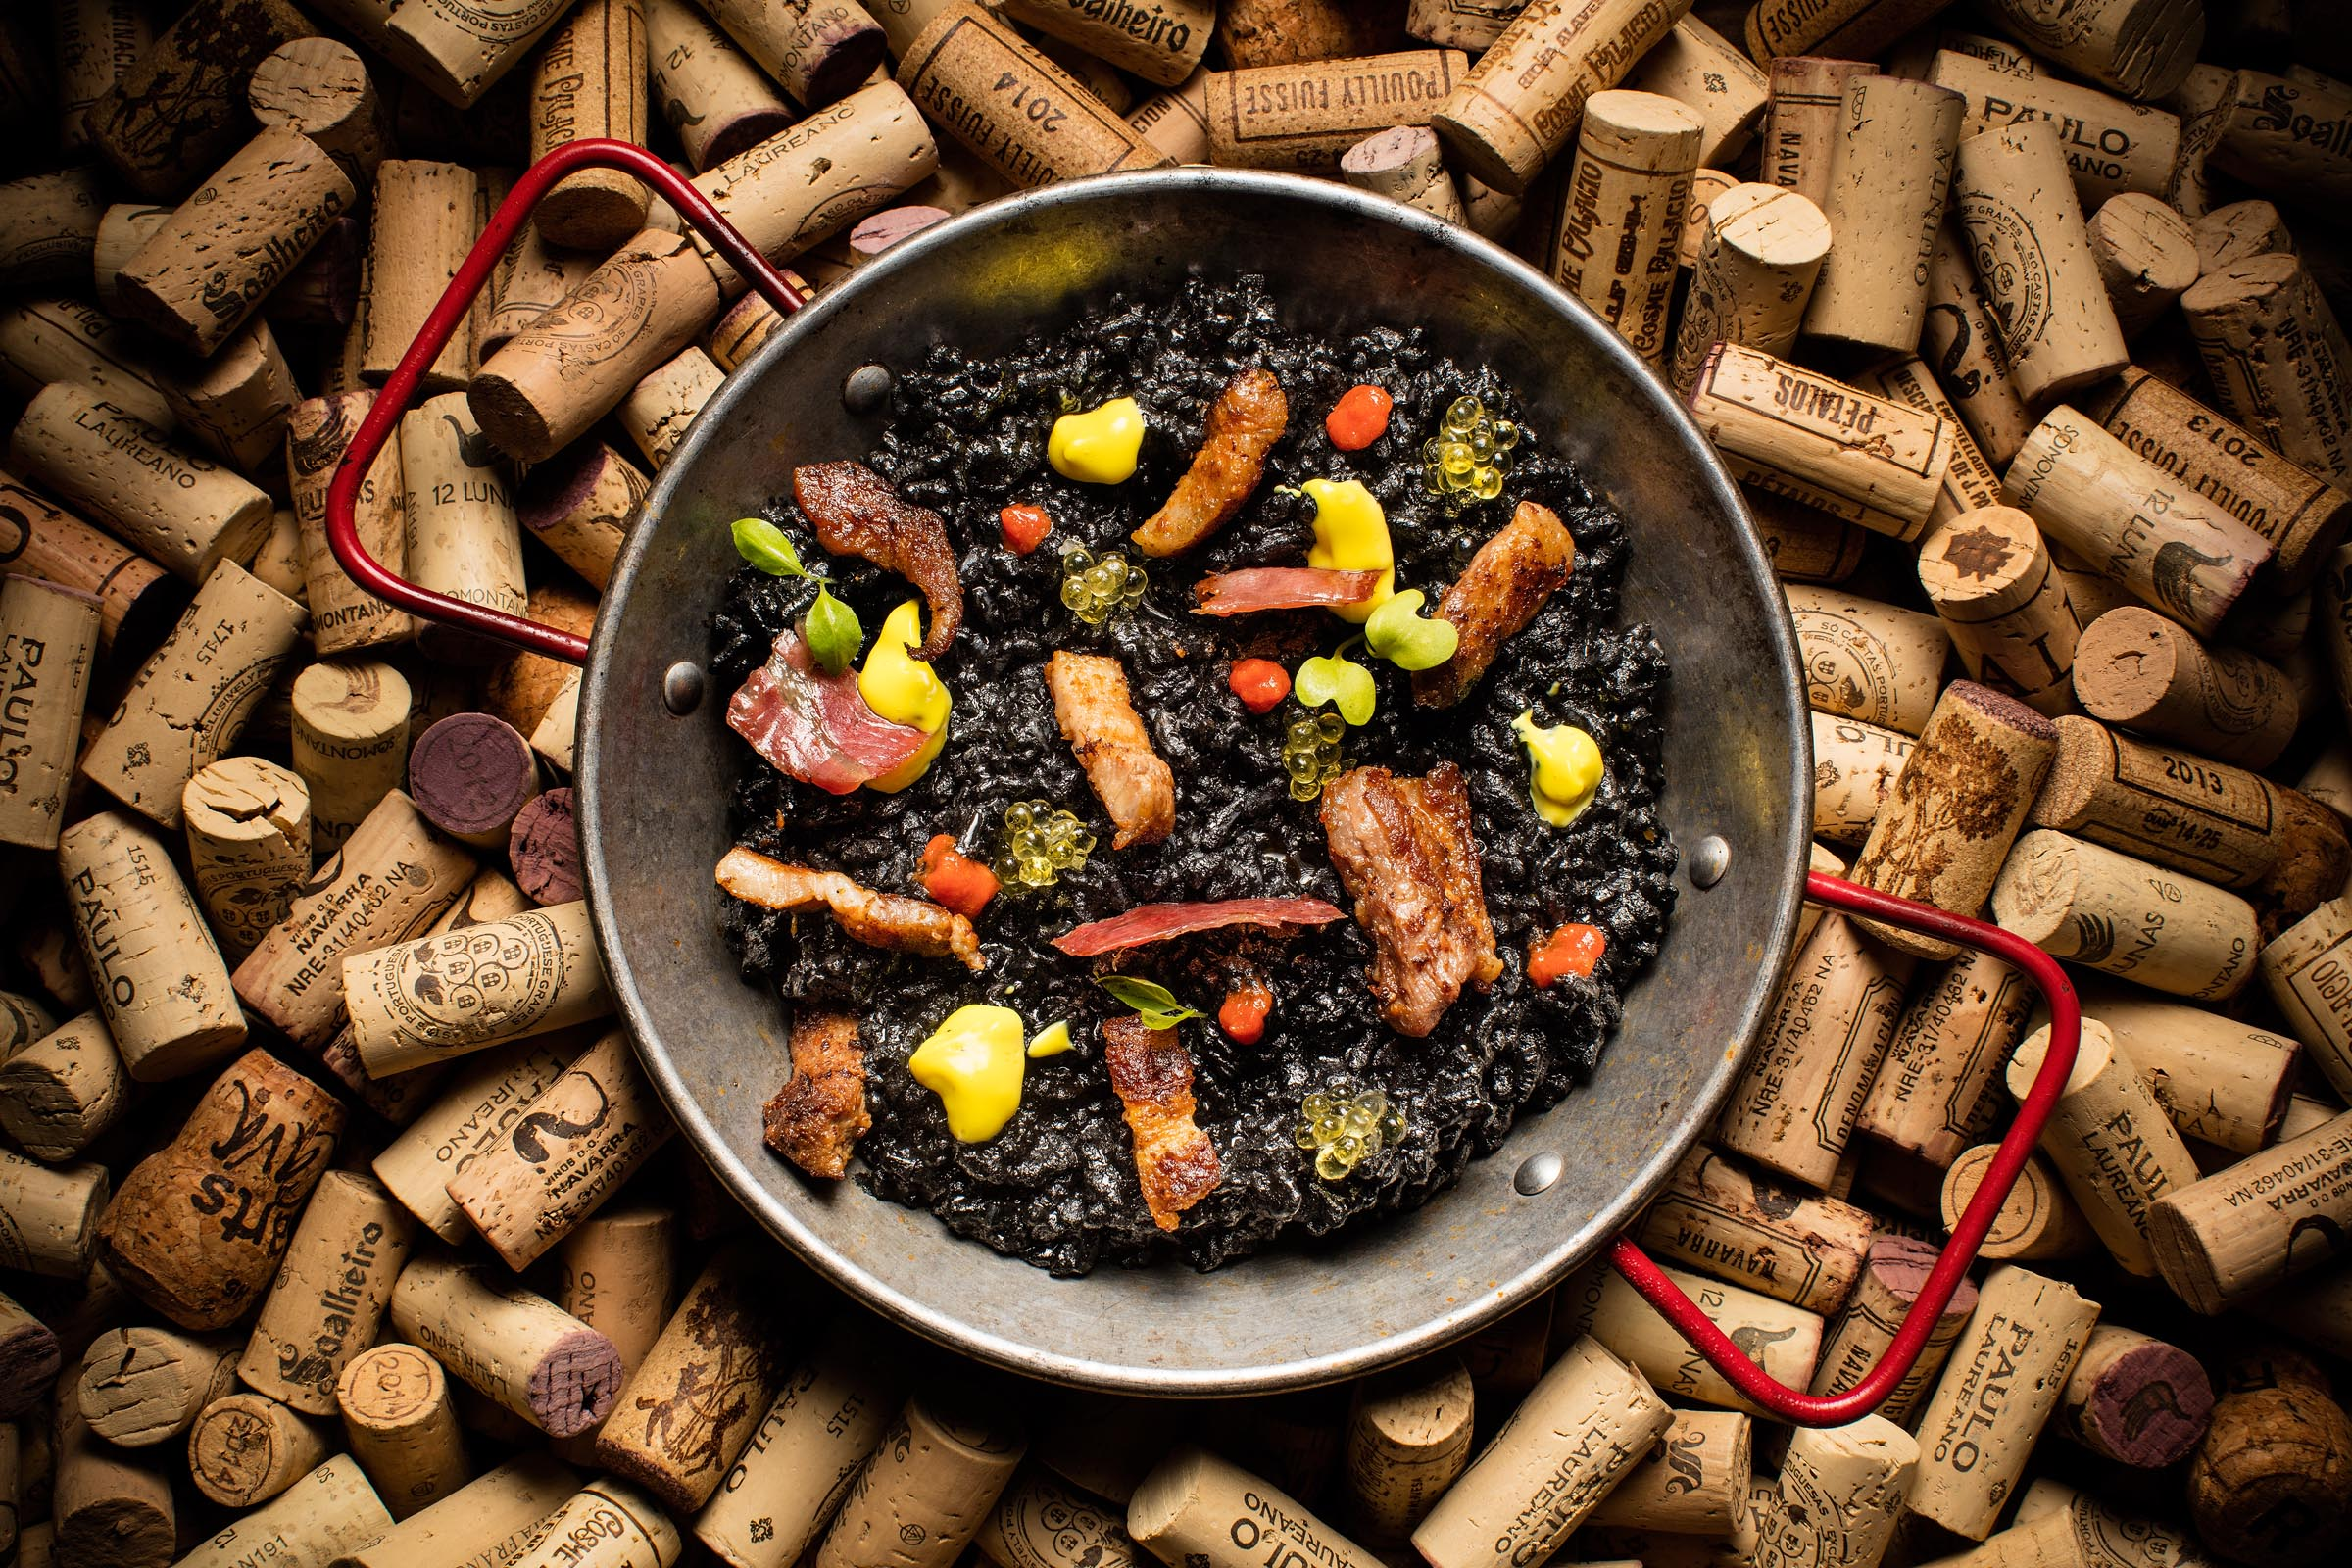 Black Pork Paella : Squid Ink Rice / Pata Negra / Iberico Pork Collar / Iberico Pork Belly / Olive Oil Caviar / Chili Sauce / Saffron Mayo